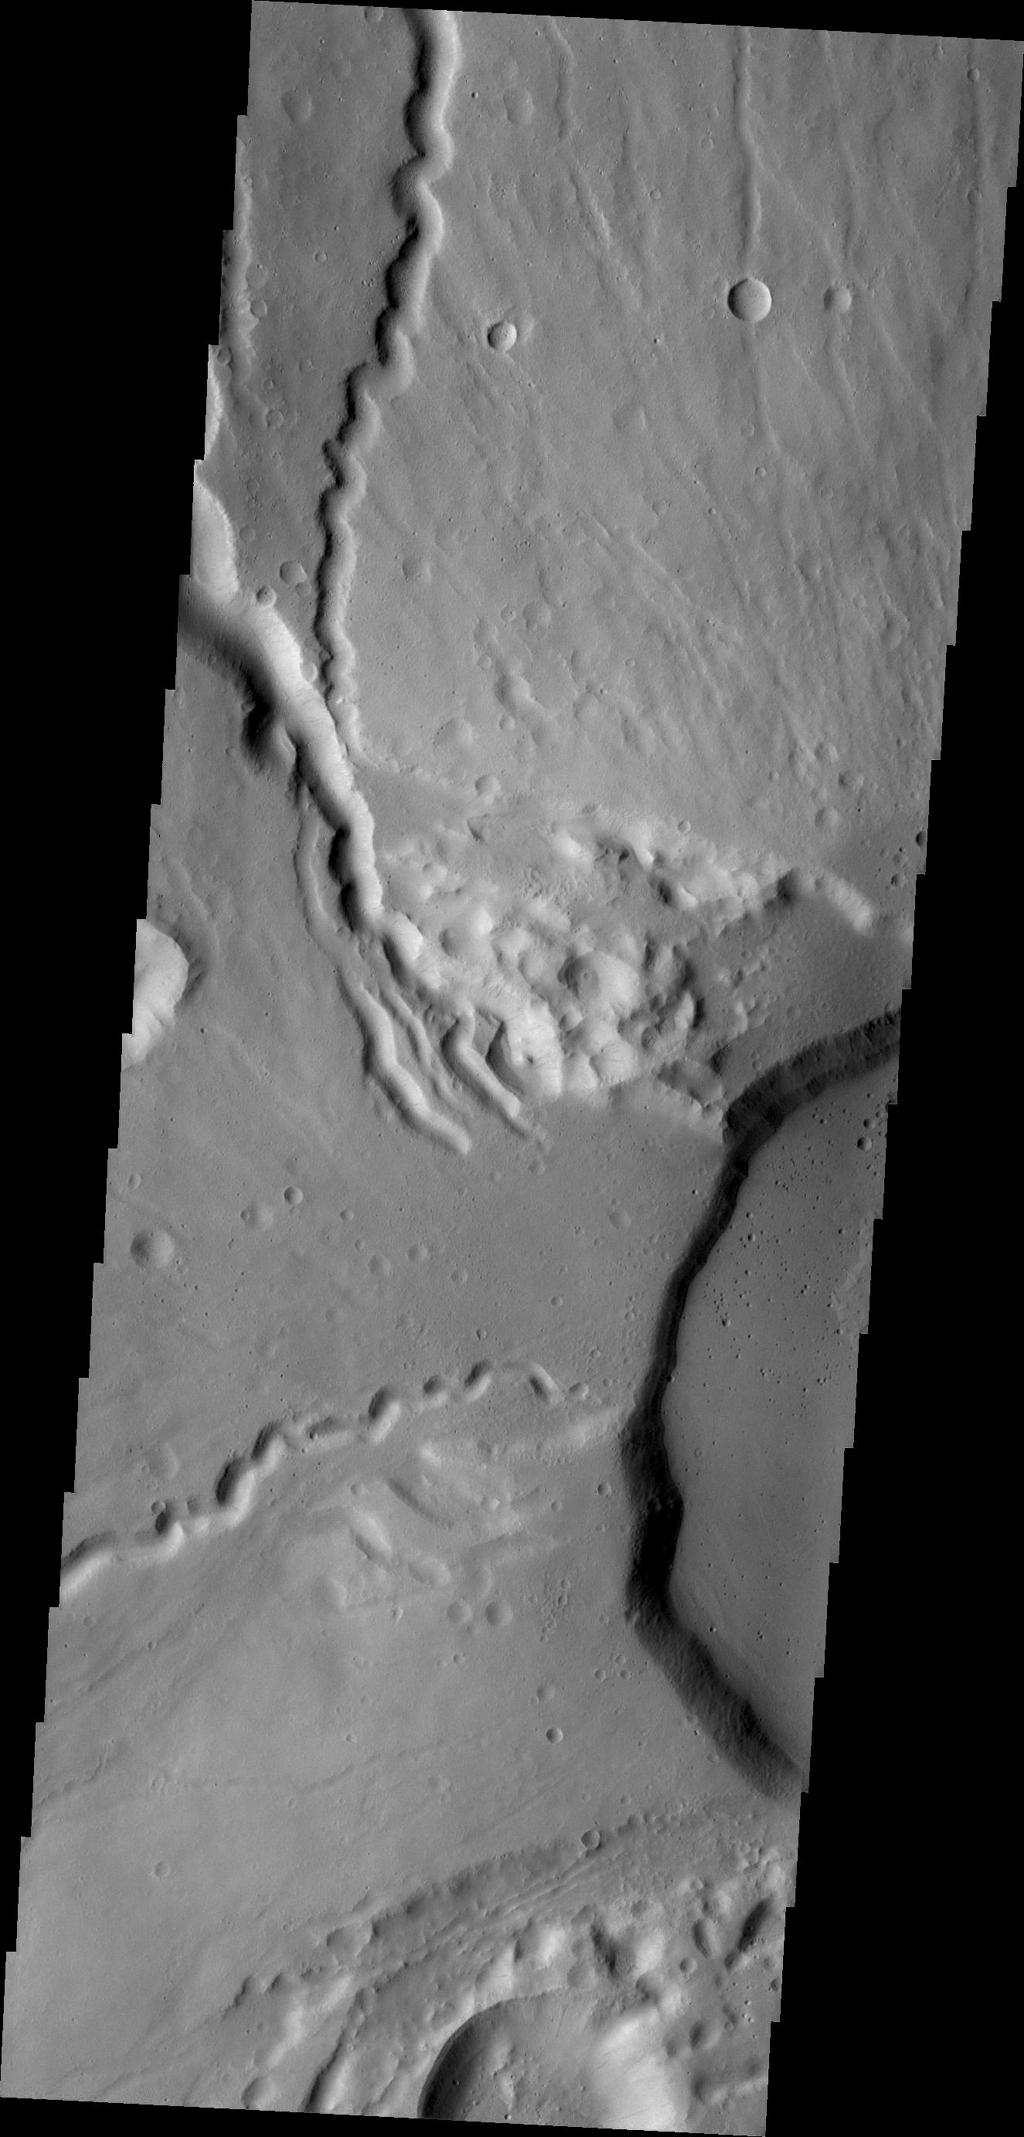 This NASA 2001 Mars Odyssey spacecraft image shows the western edge of the summit caldera of Ceranus Tholus, one of the smaller volcanic constructs of the Tharsis region. Several channels dissect the western flank of the volcano.